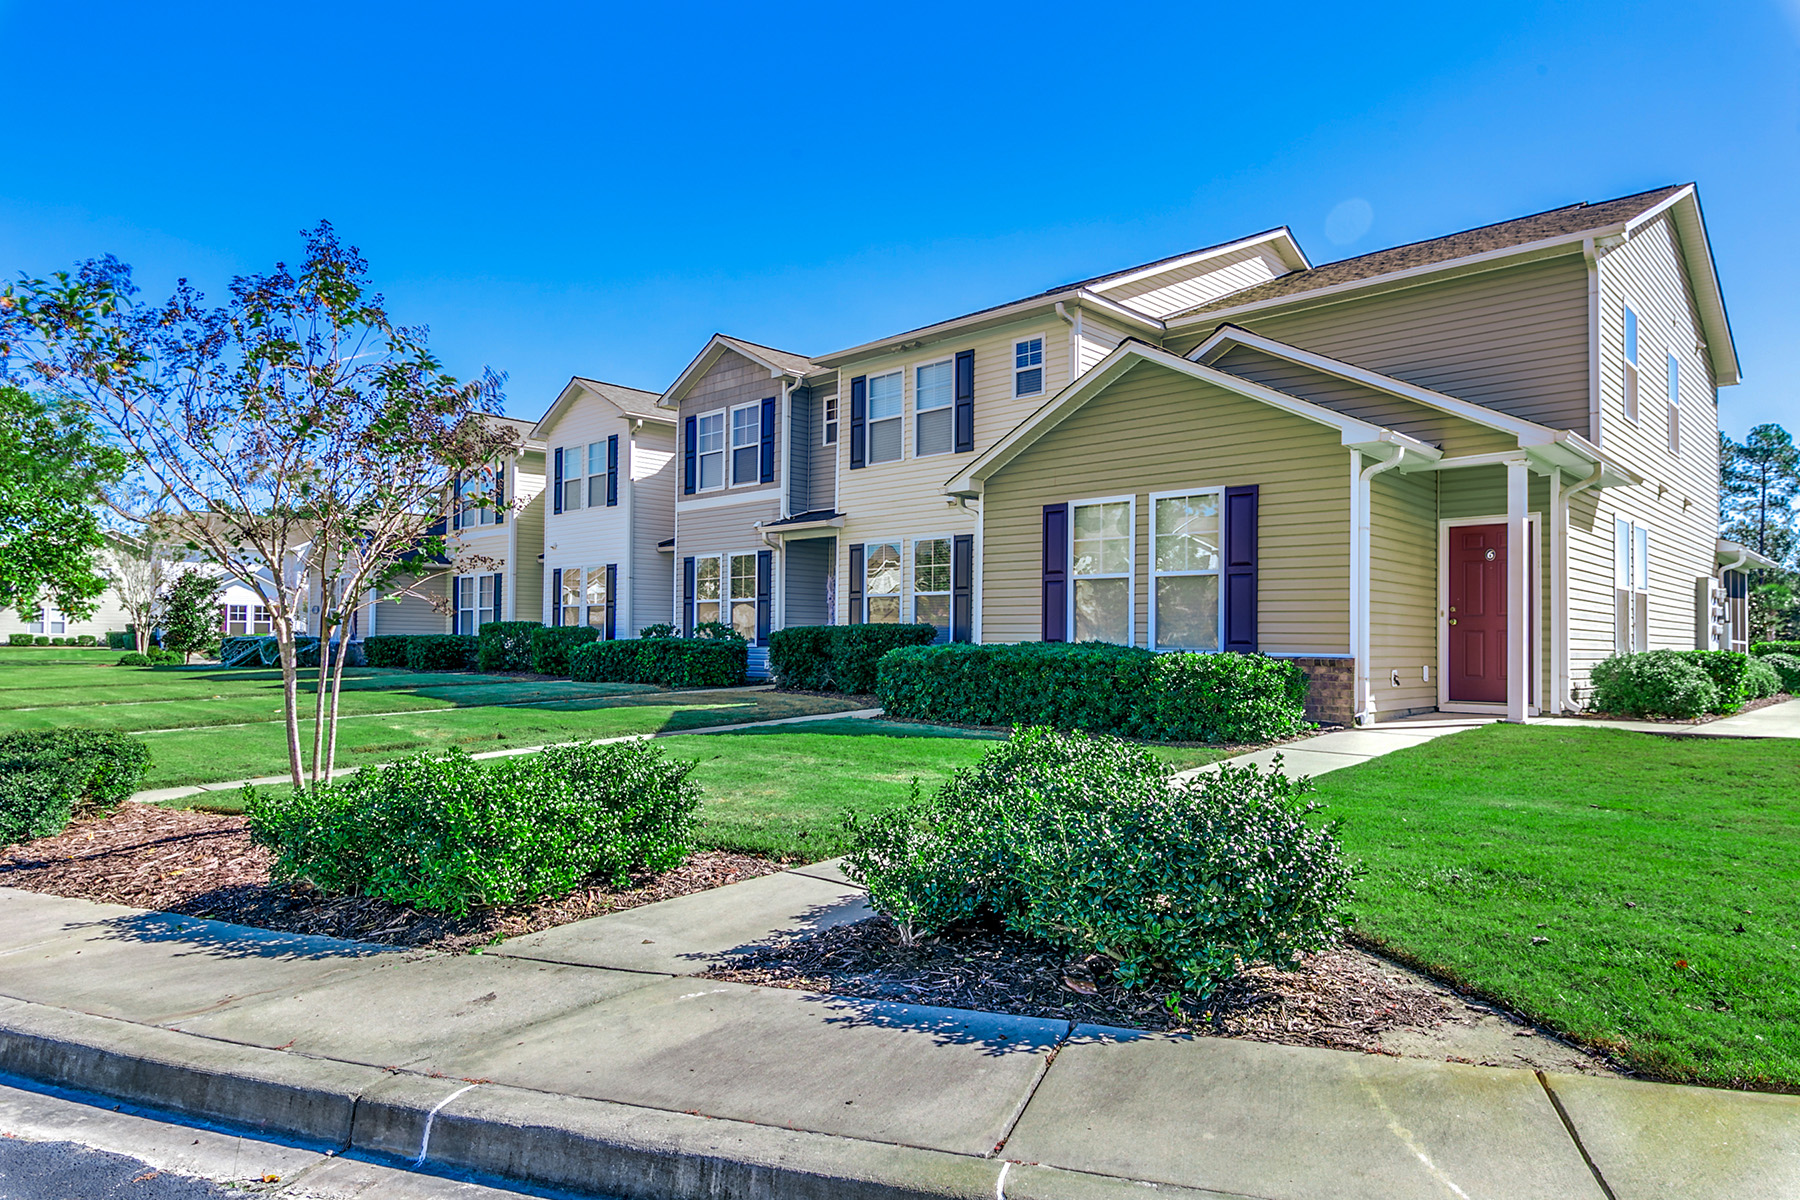 Condominium for Sale at 132 Olde Towne Way, Myrtle Beach, SC 29588 132 Olde Towne Way 5 Myrtle Beach, South Carolina 29588 United States